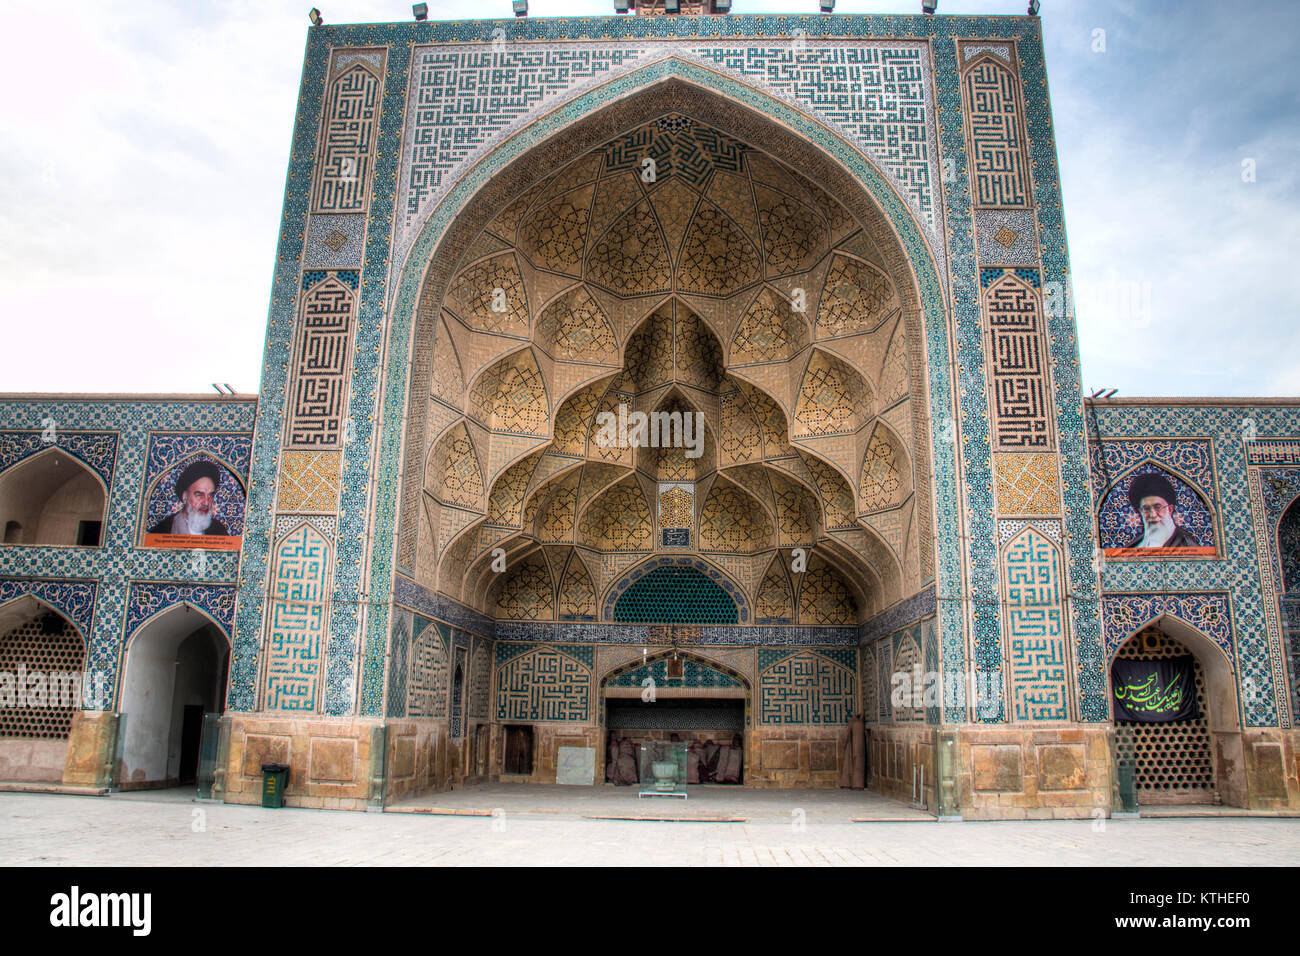 Jame Mosque Of Isfahan Stock Photos & Jame Mosque Of ...